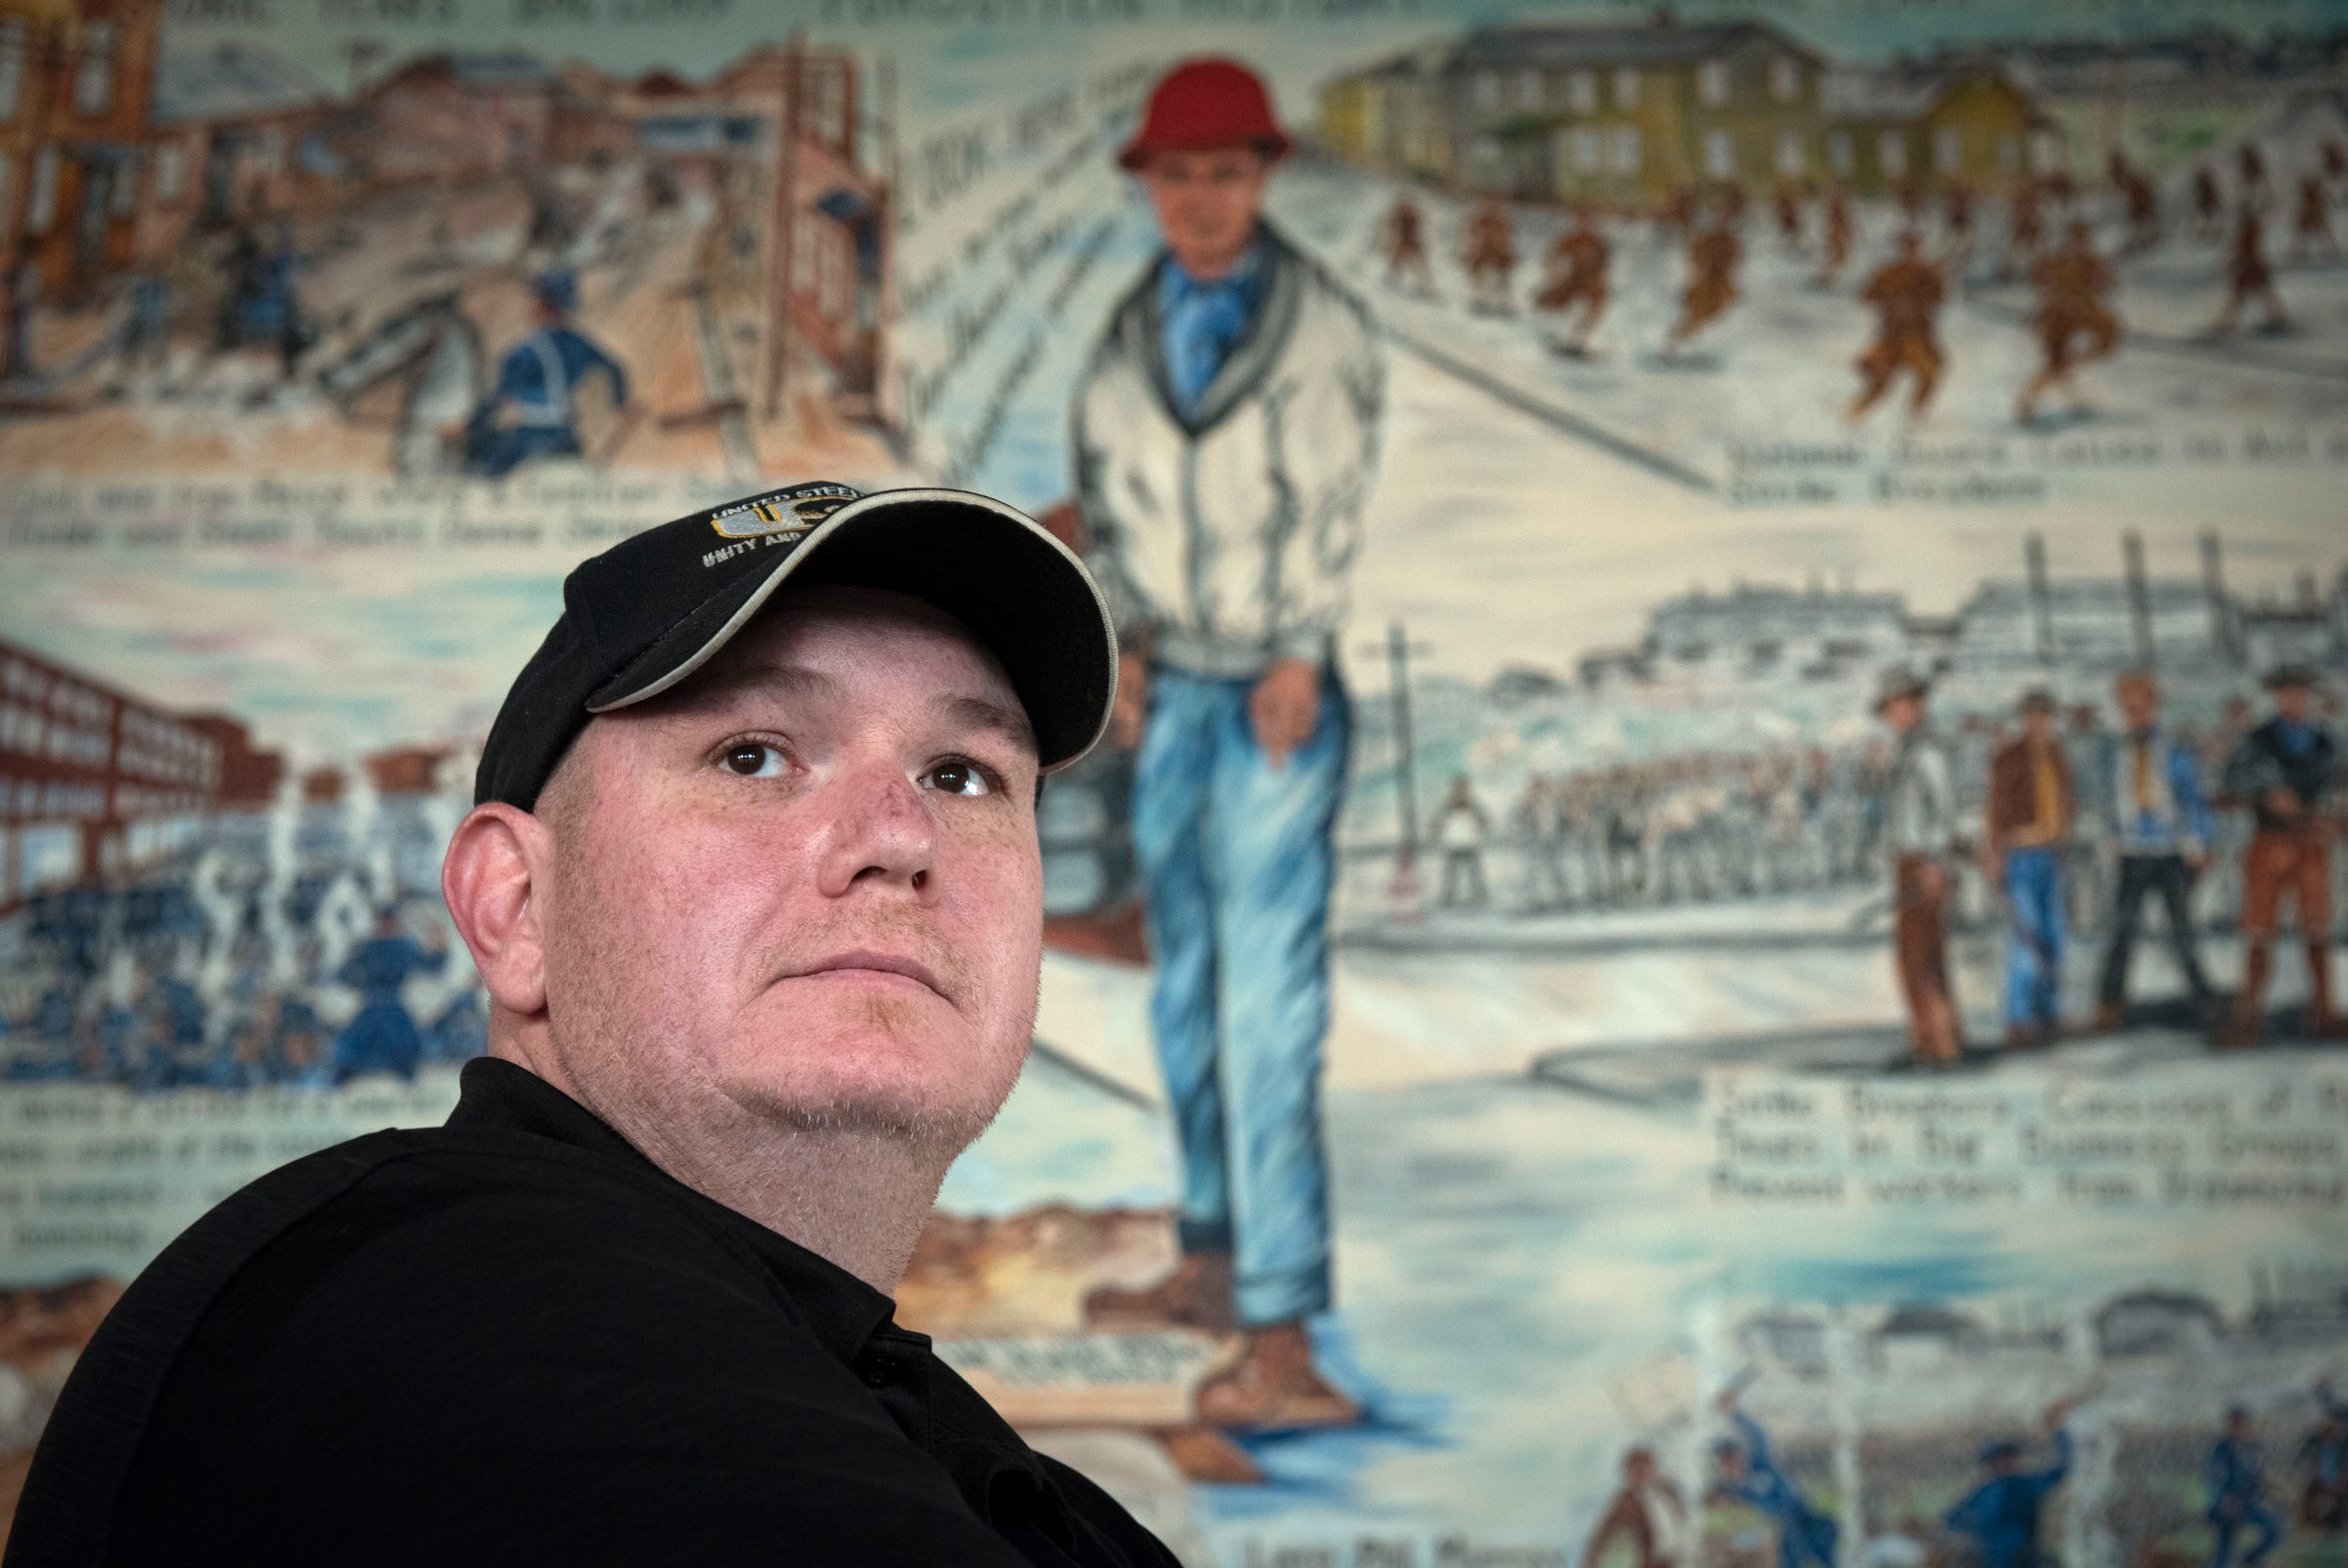 Bob Kemper, grievance chairman of United Steelworkers Local 1299, poses for a photo at the local in River Rouge, Thursday, April 9, 2020. Mr. Kemper is a 24-year Great Lakes Works employee.